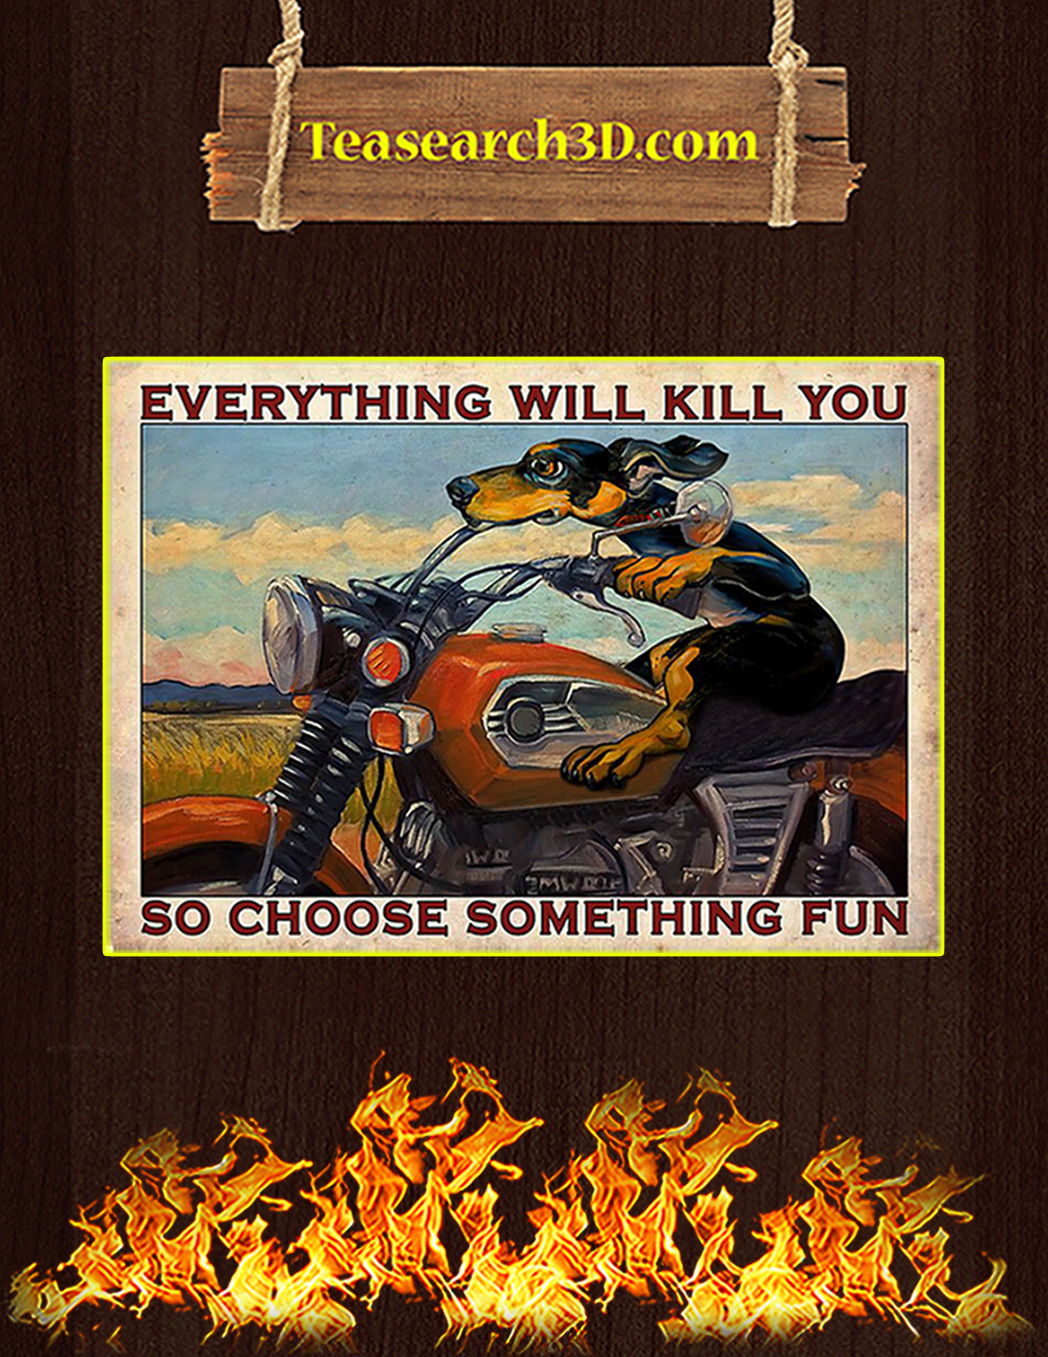 Dachshund motorcycle everything will kill you so choose something fun poster A1